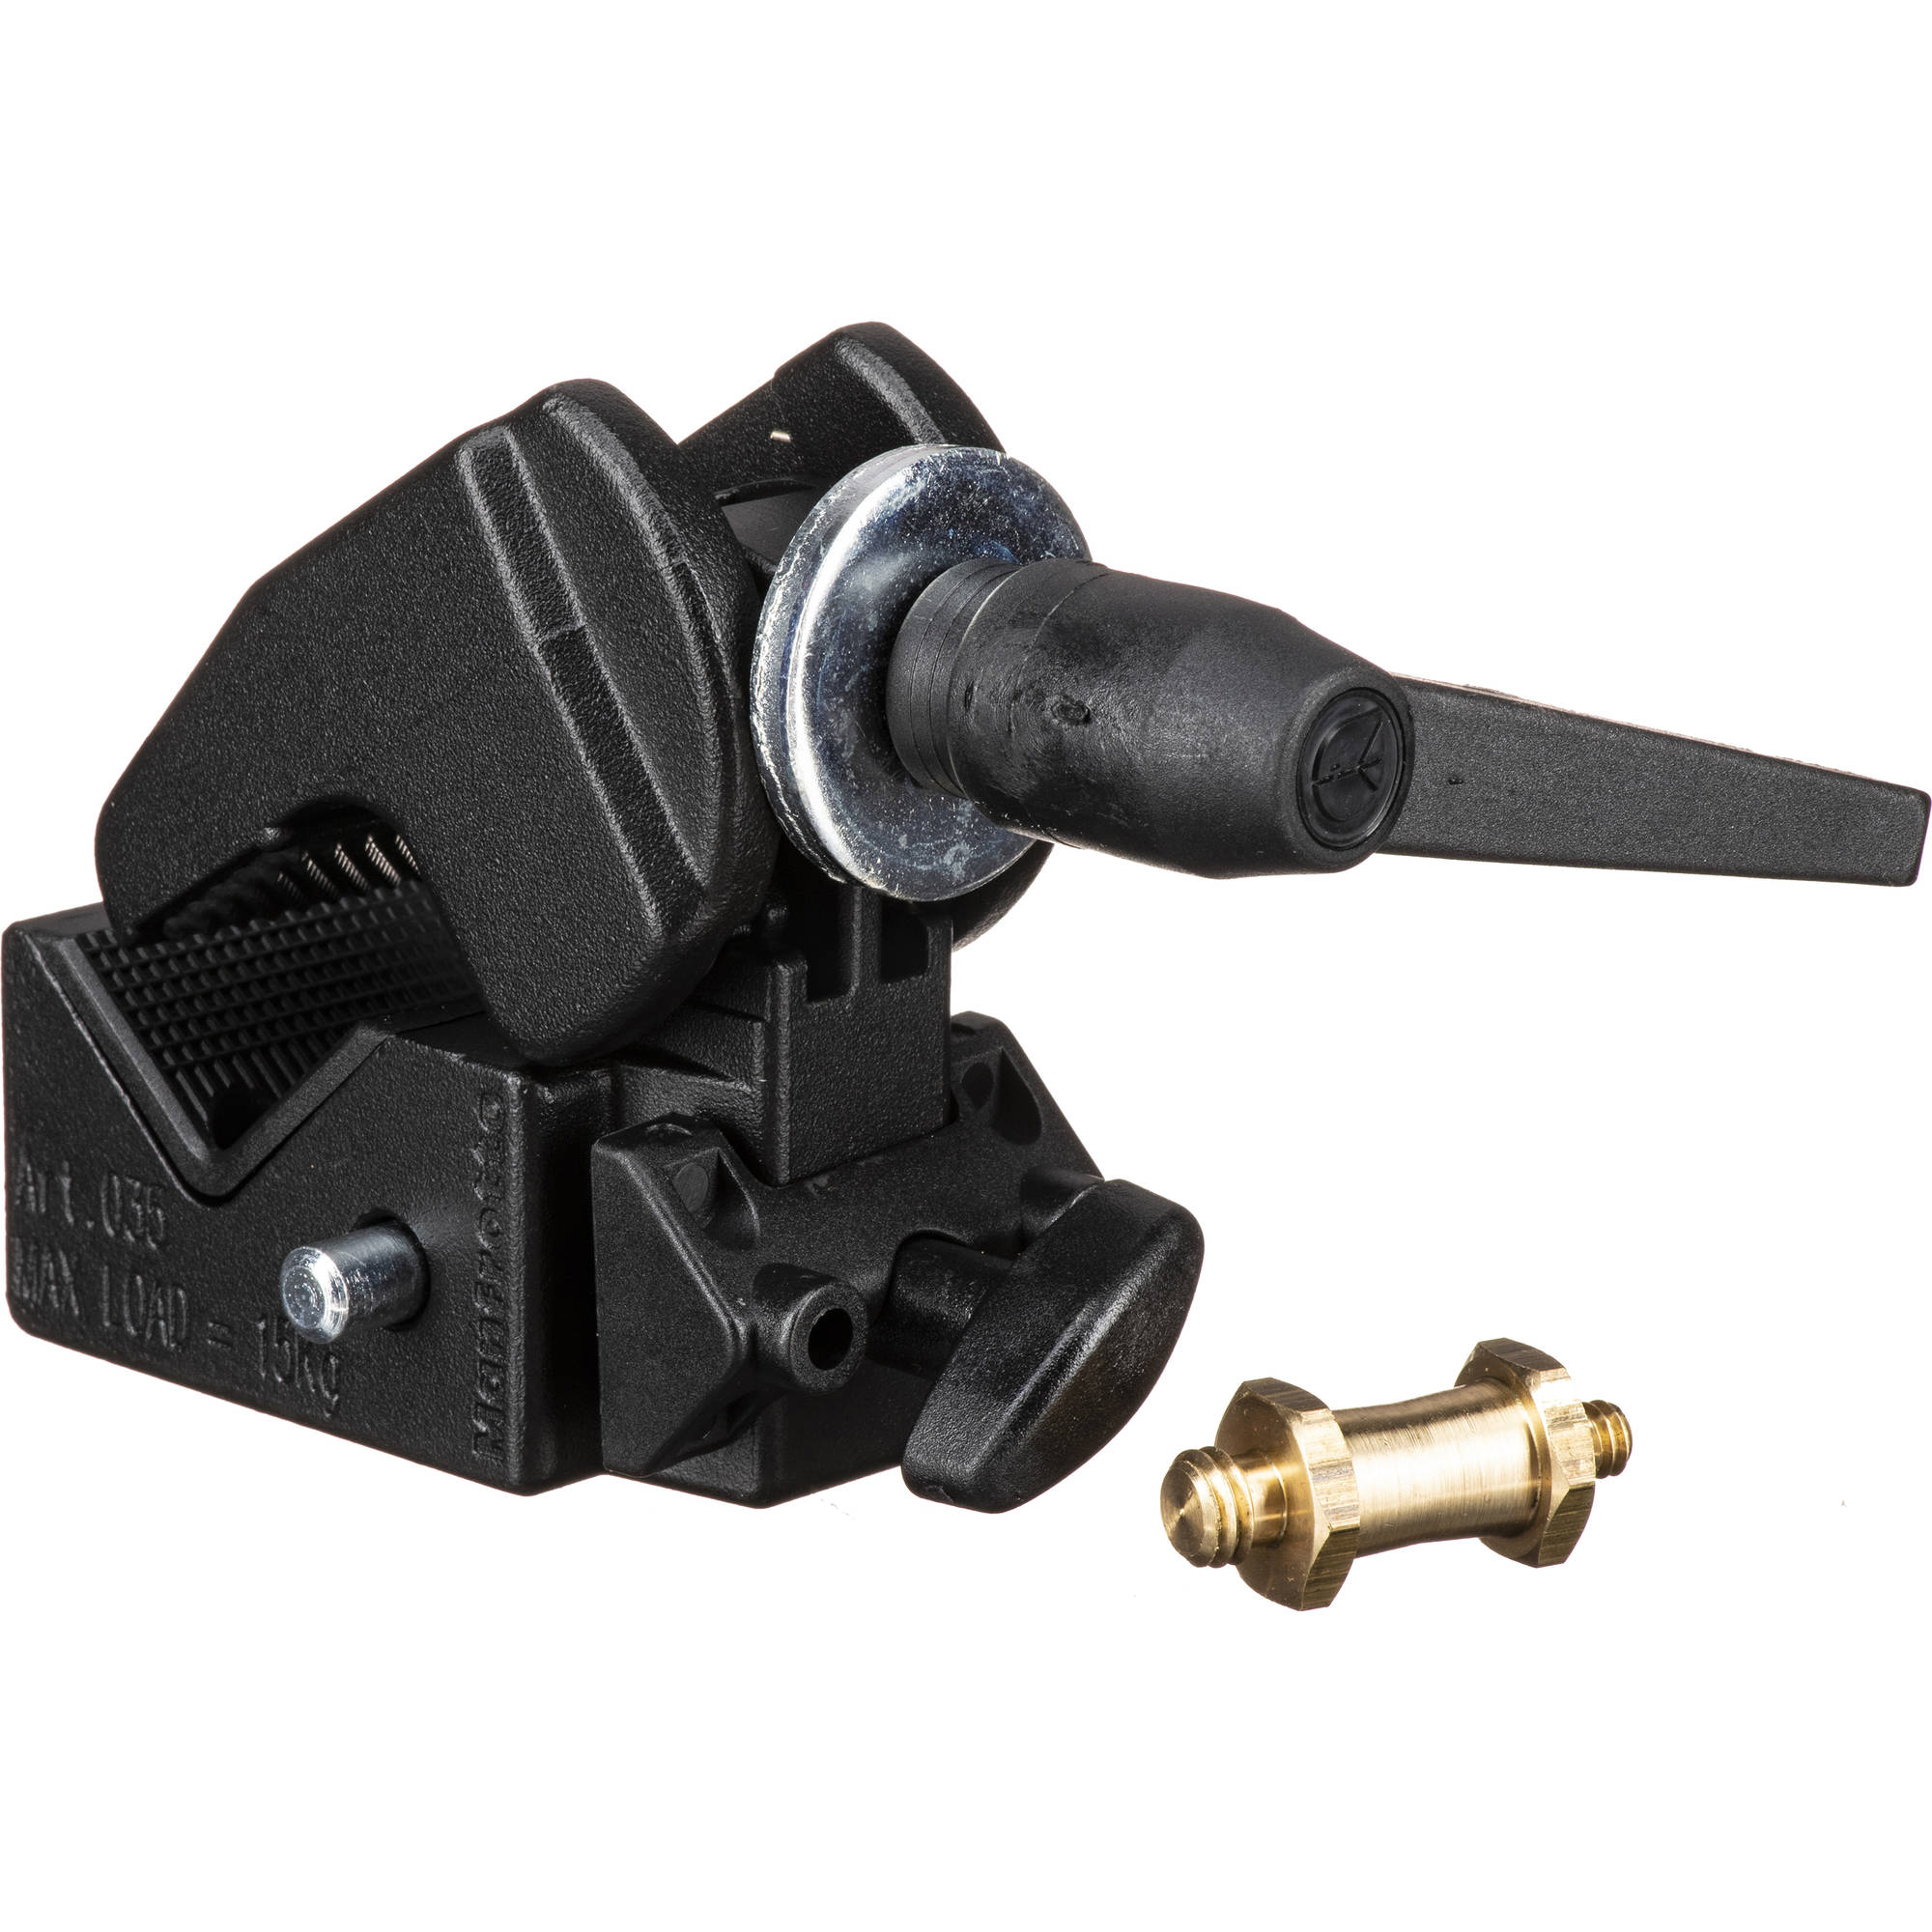 Manfrotto 2909 Super Clamp with 2907 Short Stud,Black,5.3 x 4.1 x 2.6 inches